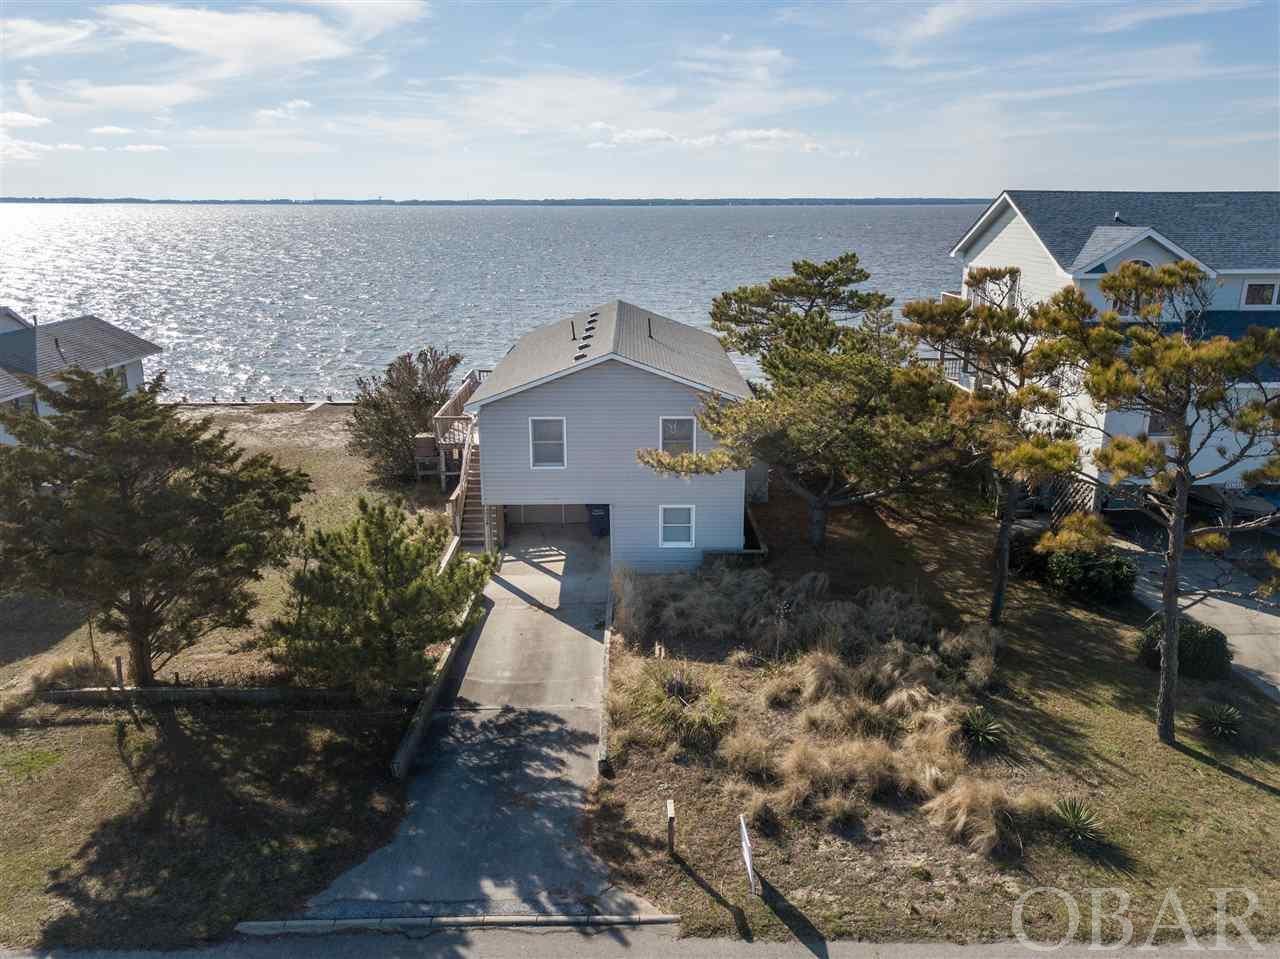 4728 Roanoke Way,Nags Head,NC 27959,3 Bedrooms Bedrooms,2 BathroomsBathrooms,Residential,Roanoke Way,100745